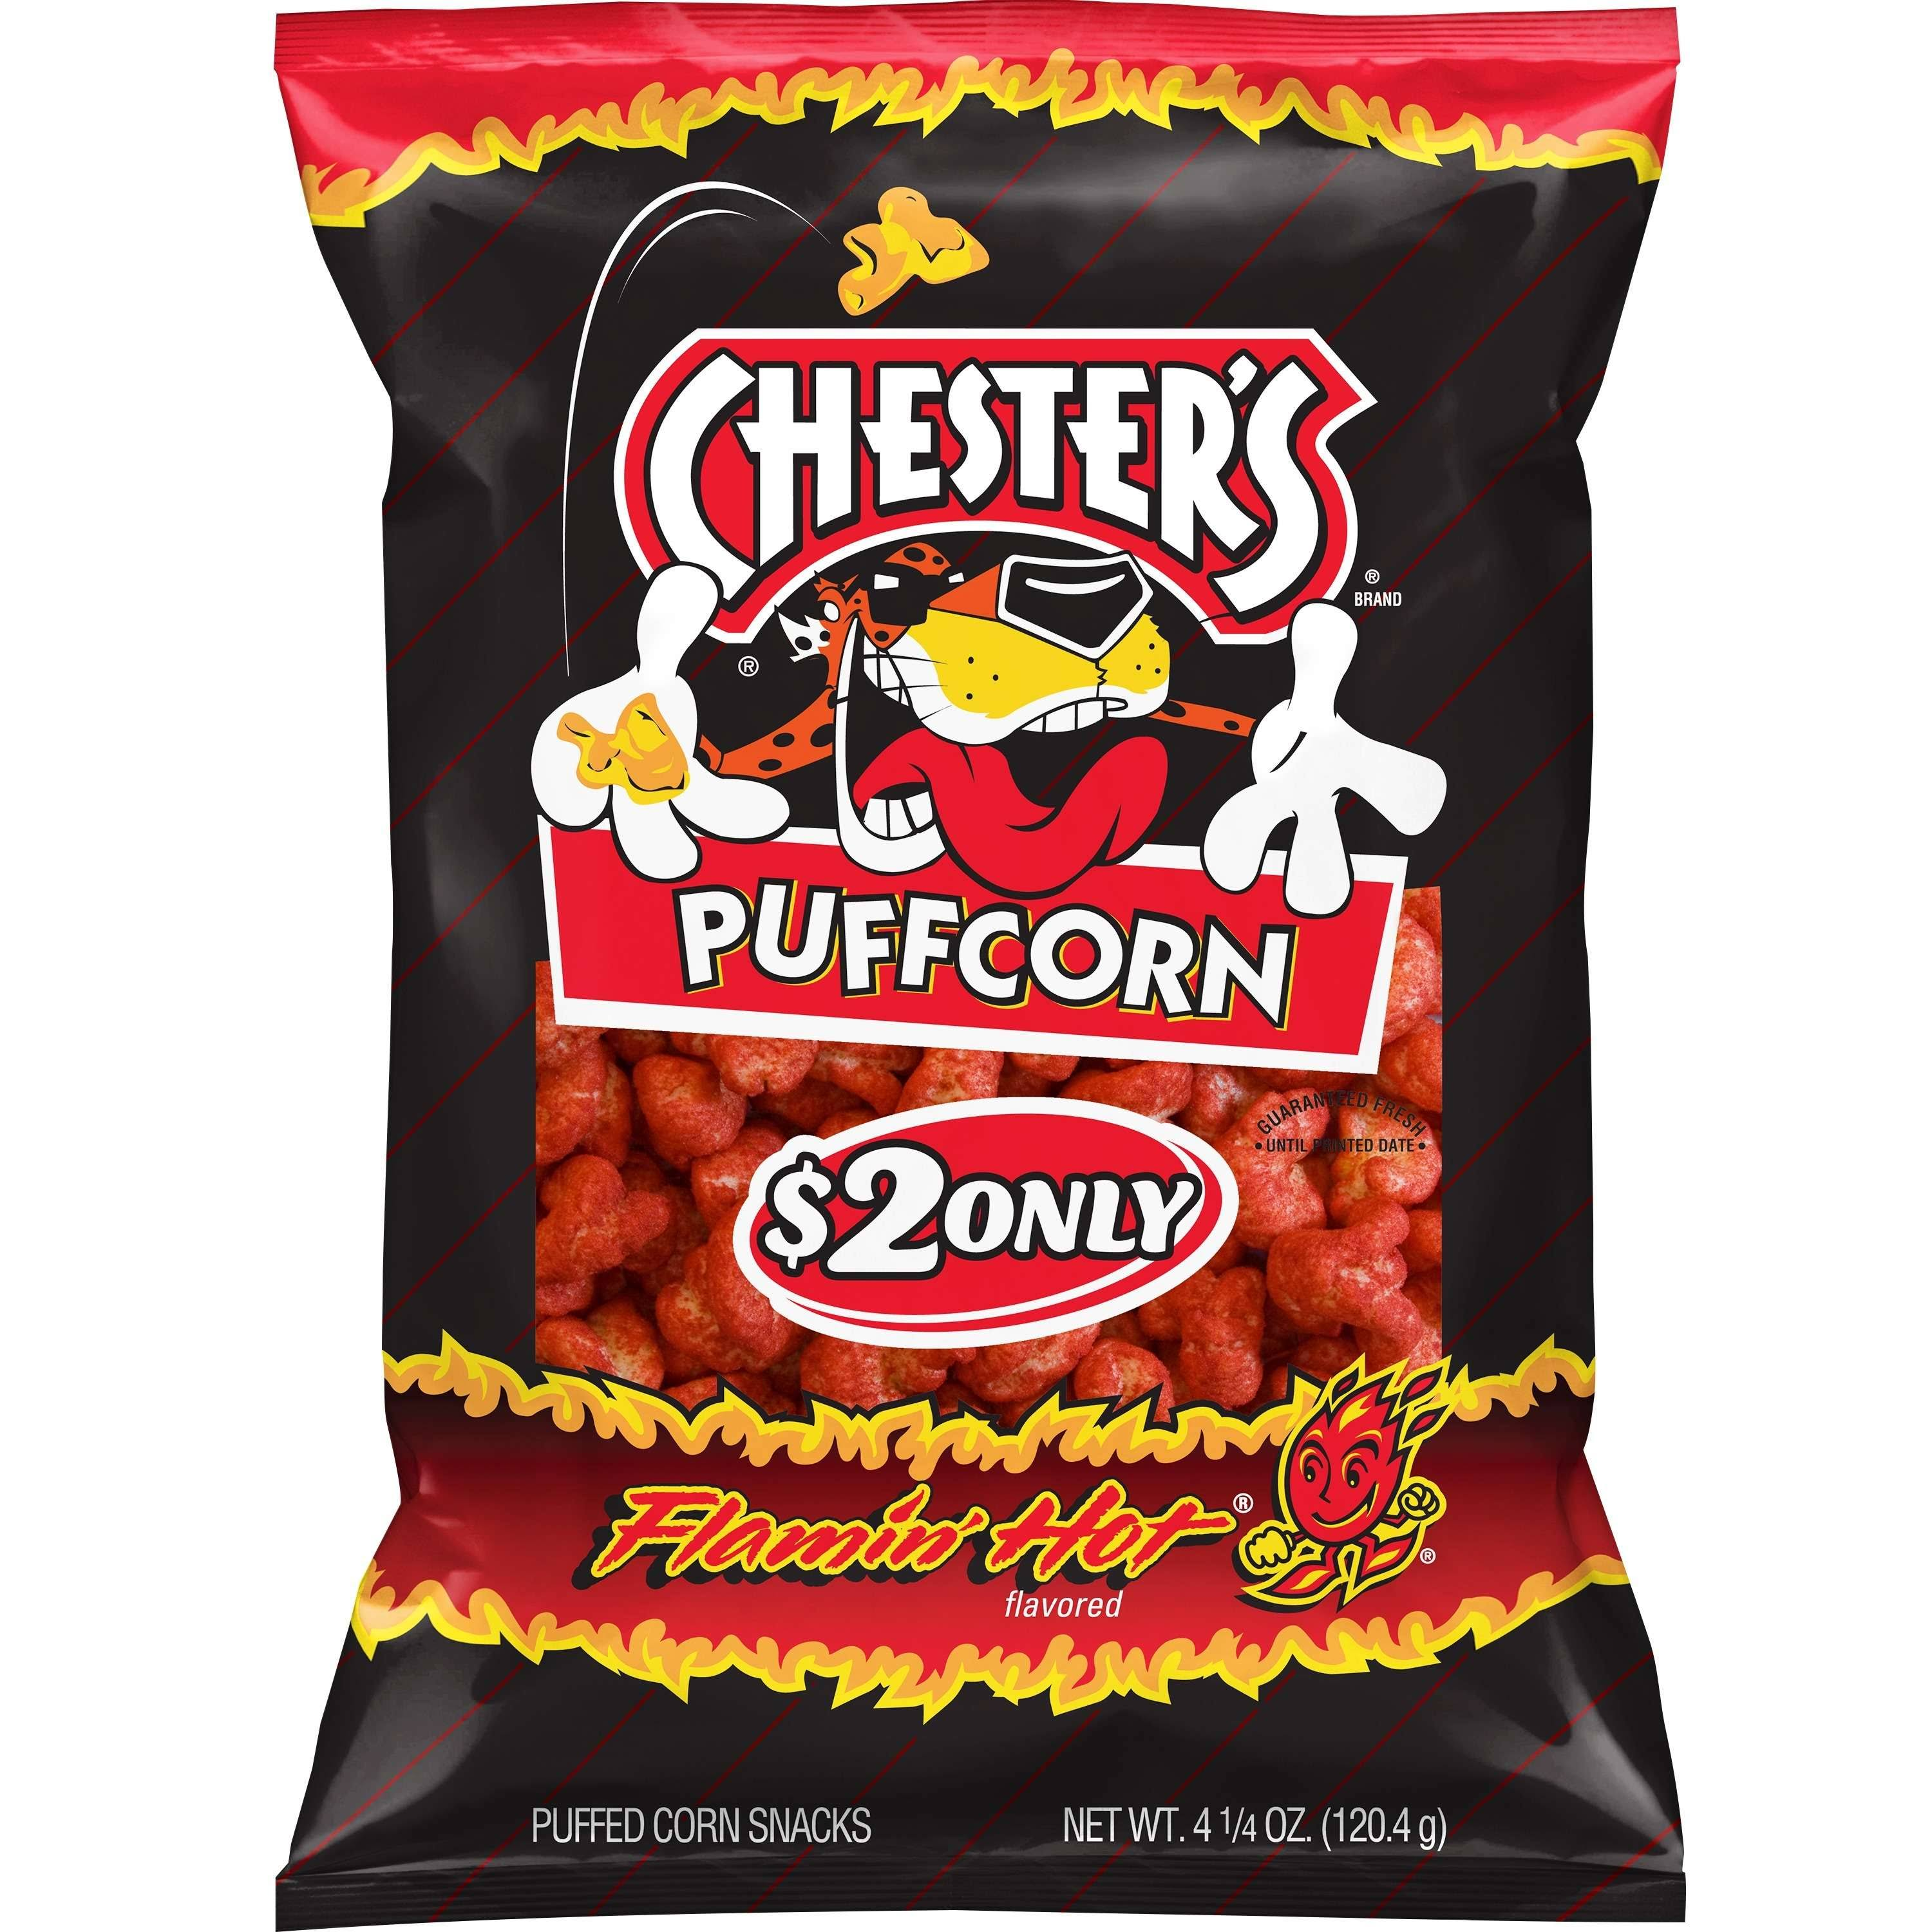 Chesters Puffed Corn Snacks, Flamin' Hot Flavored - 4.25 oz